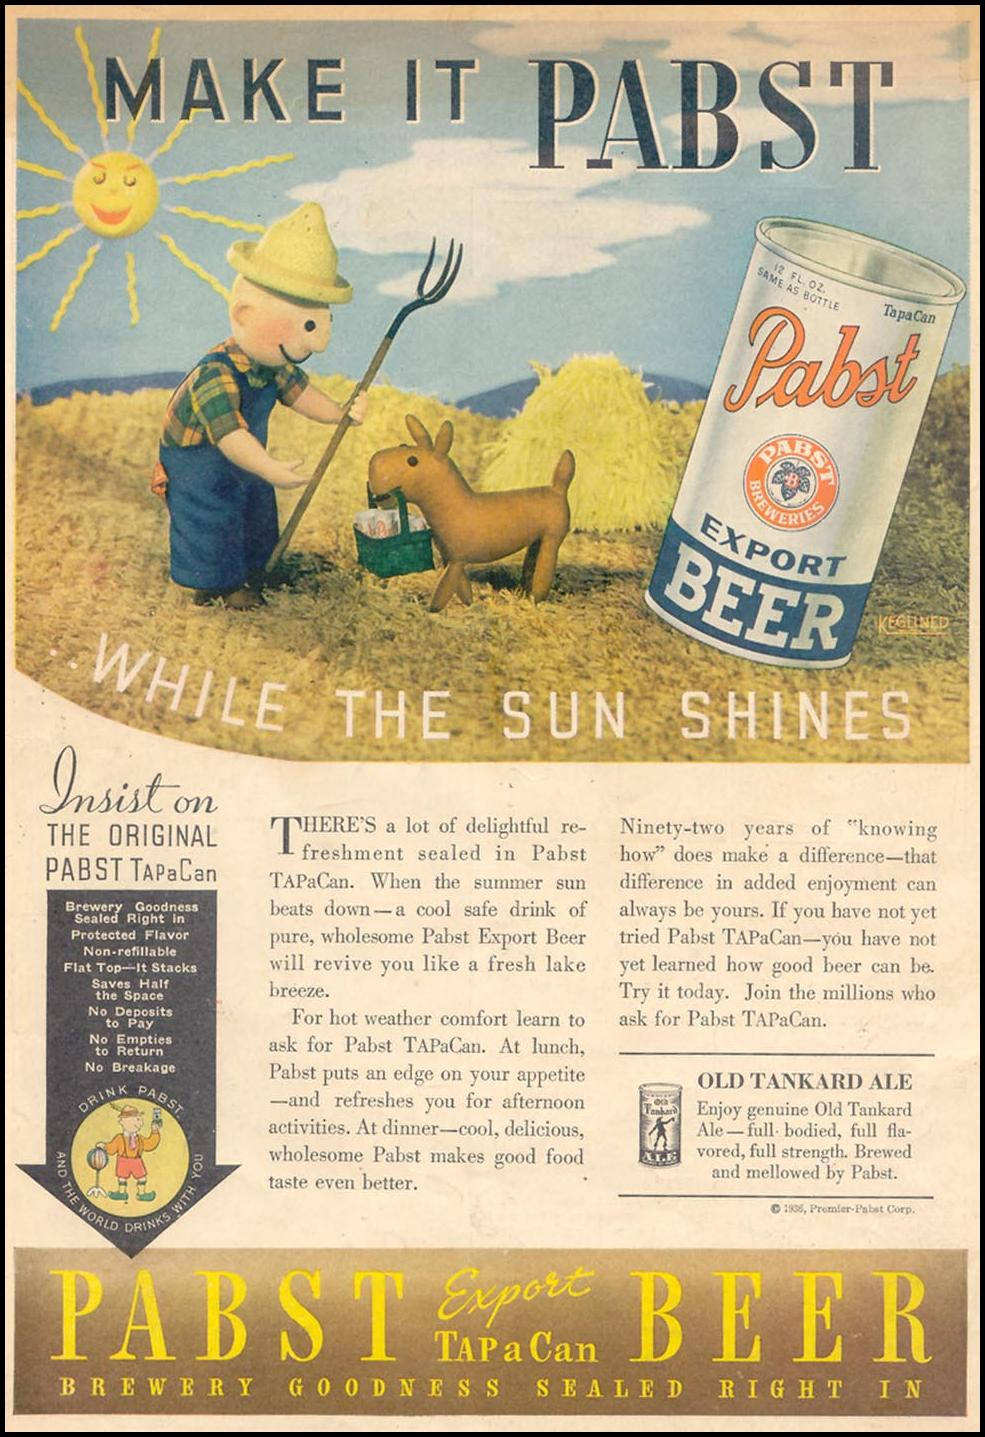 PABST BEER LIBERTY 08/26/1936 BACK COVER